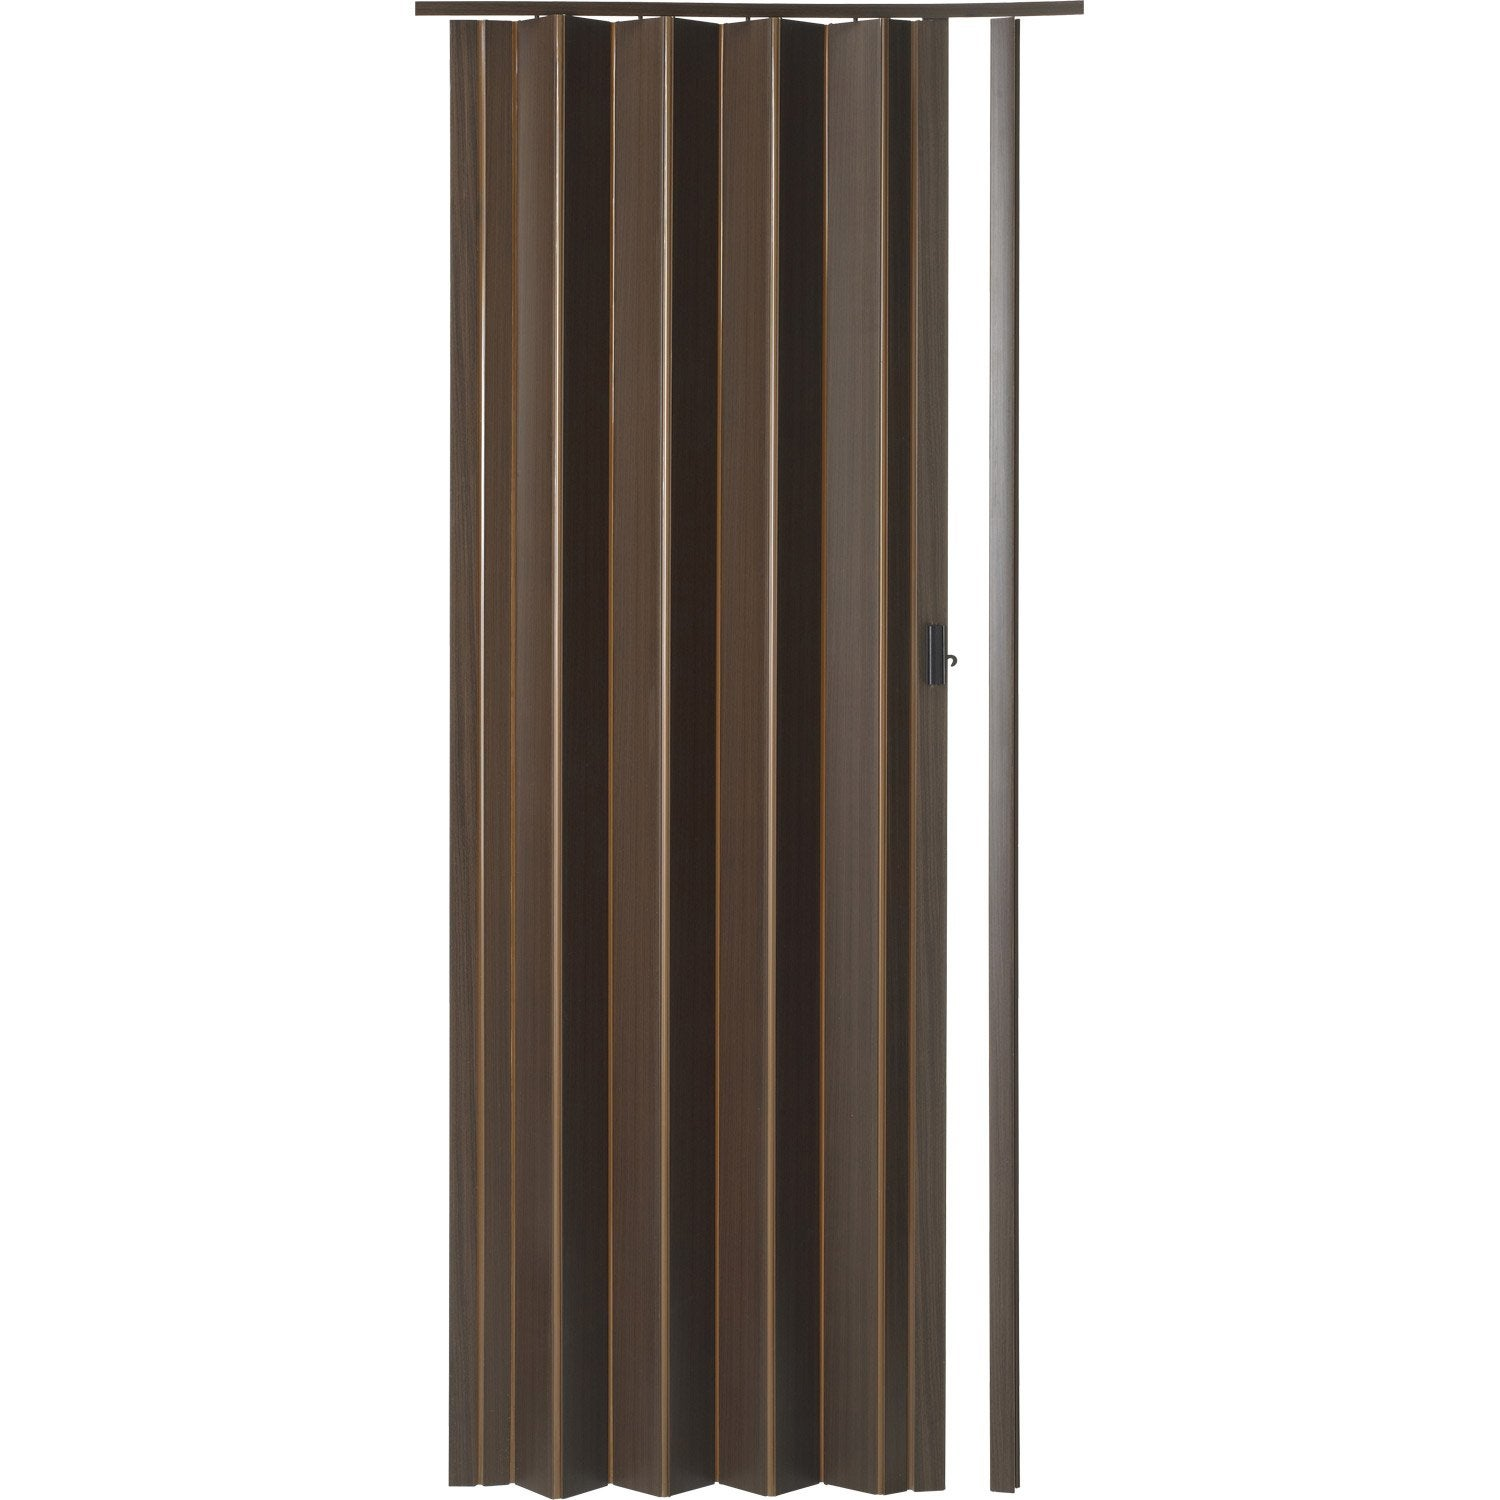 porte accordeon sur mesure